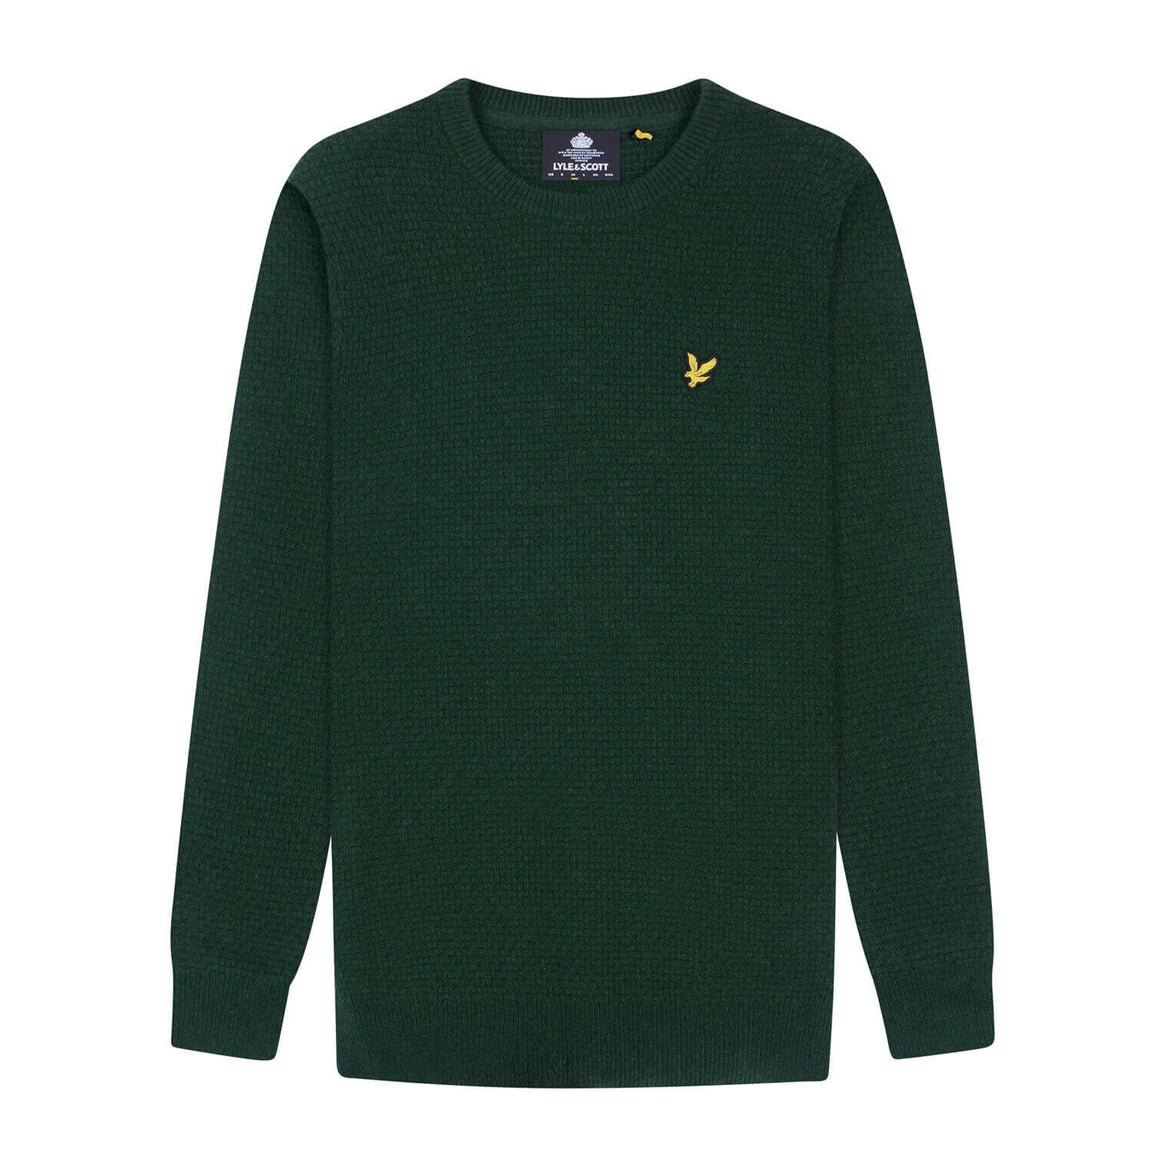 Basket Weave Jumper for Men in Green